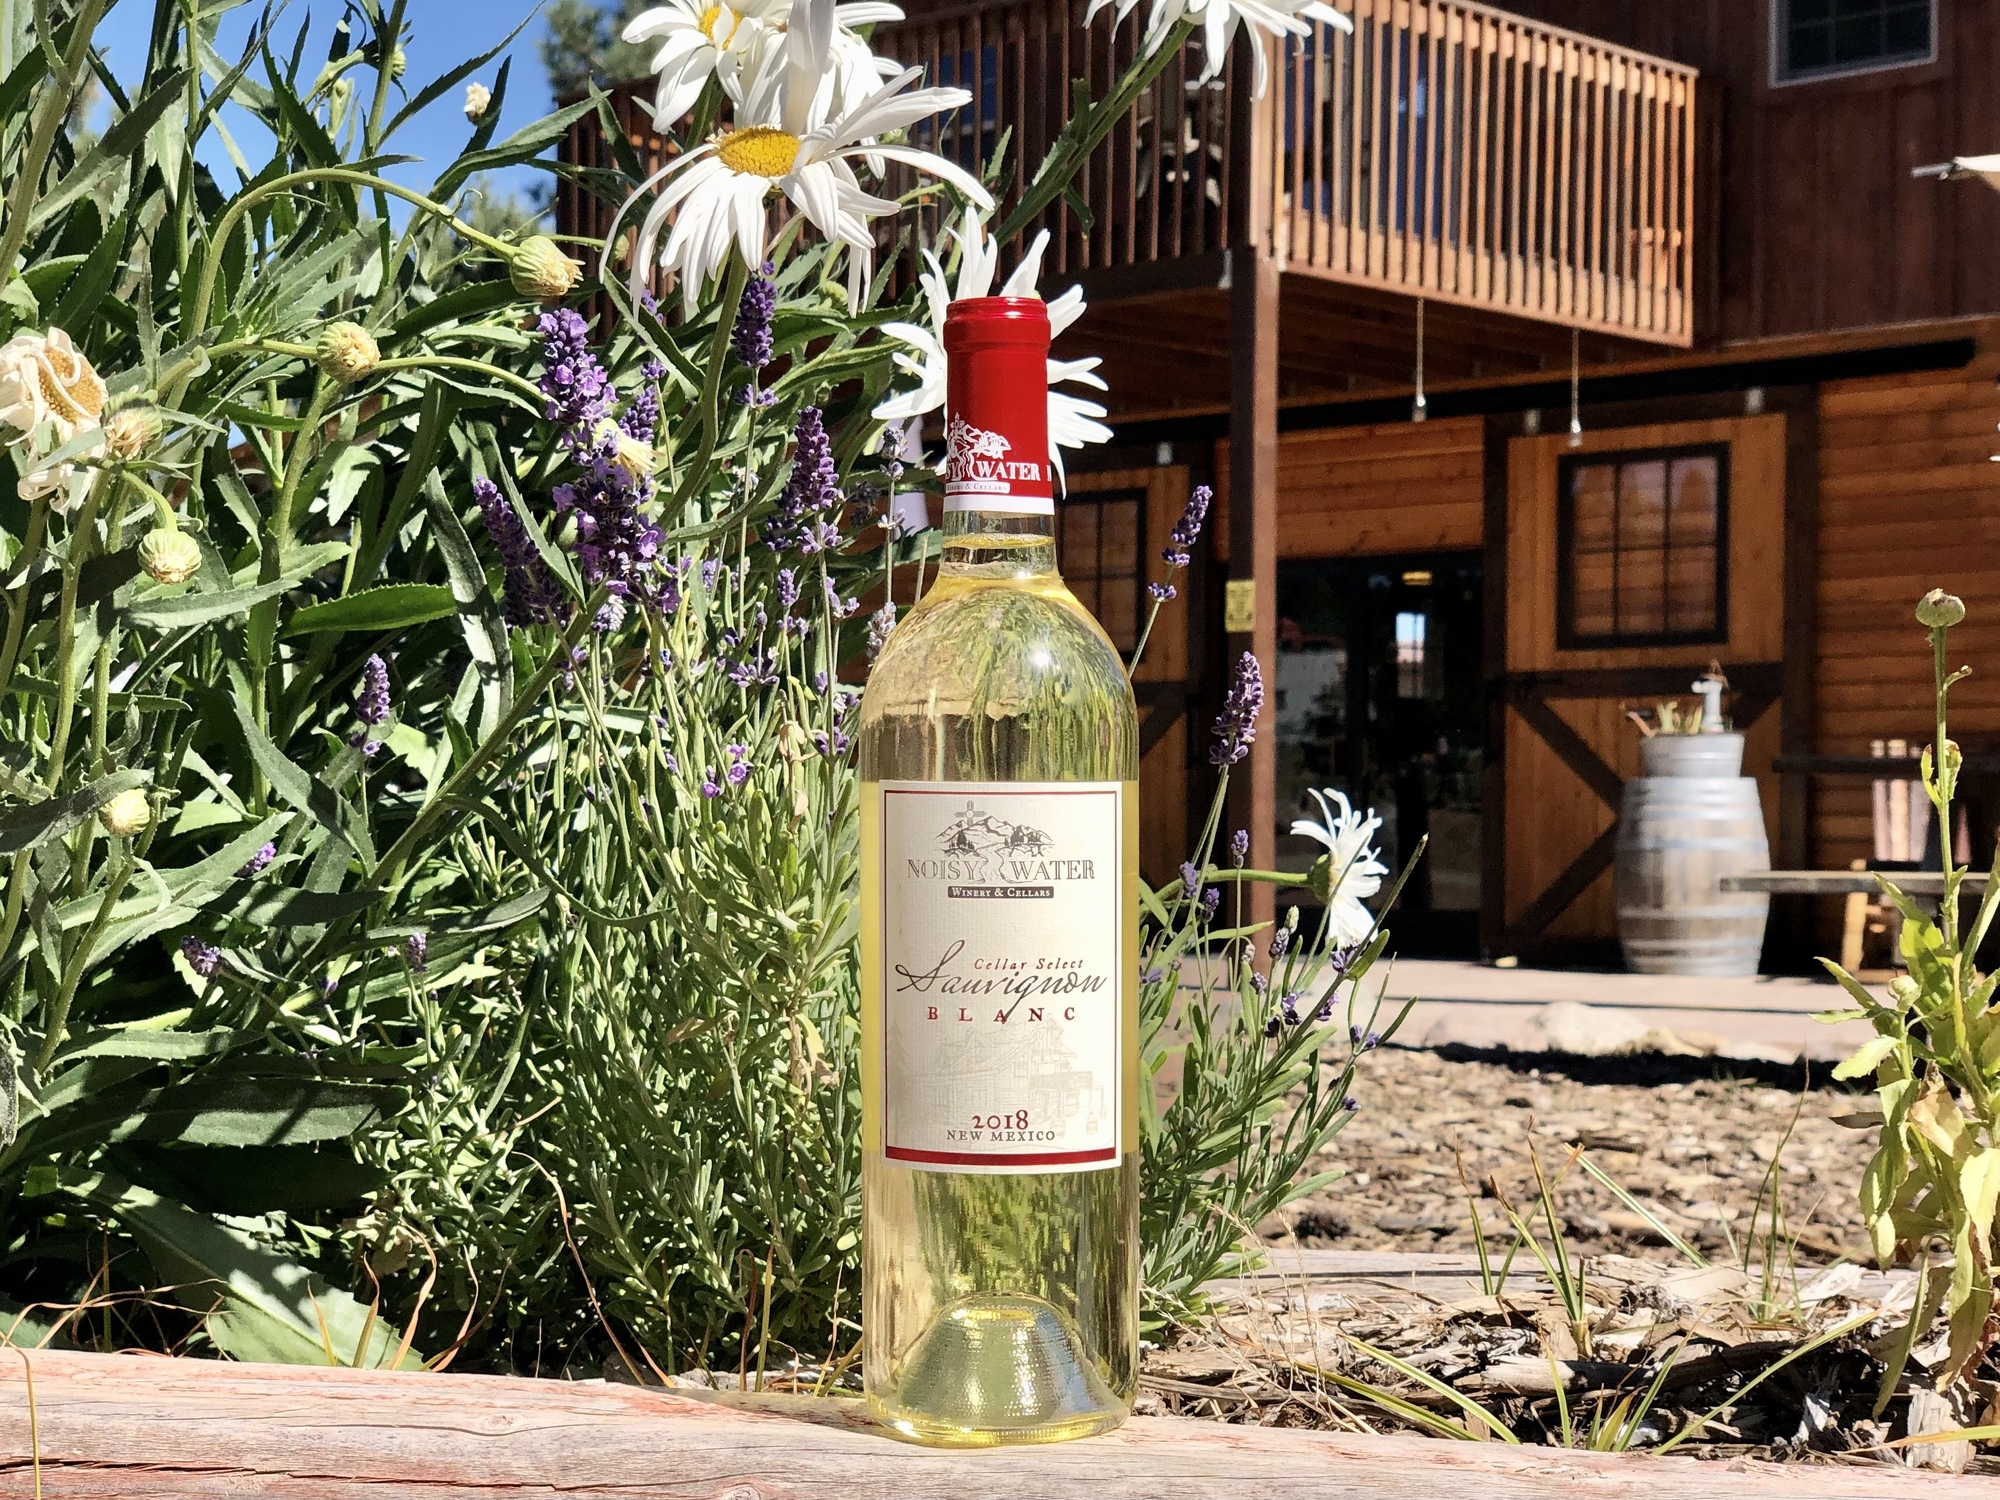 Noisy Water Winery's 2018 Sauvignon Blanc staged with flowers at Enchanted Vine in Alto, New Mexico